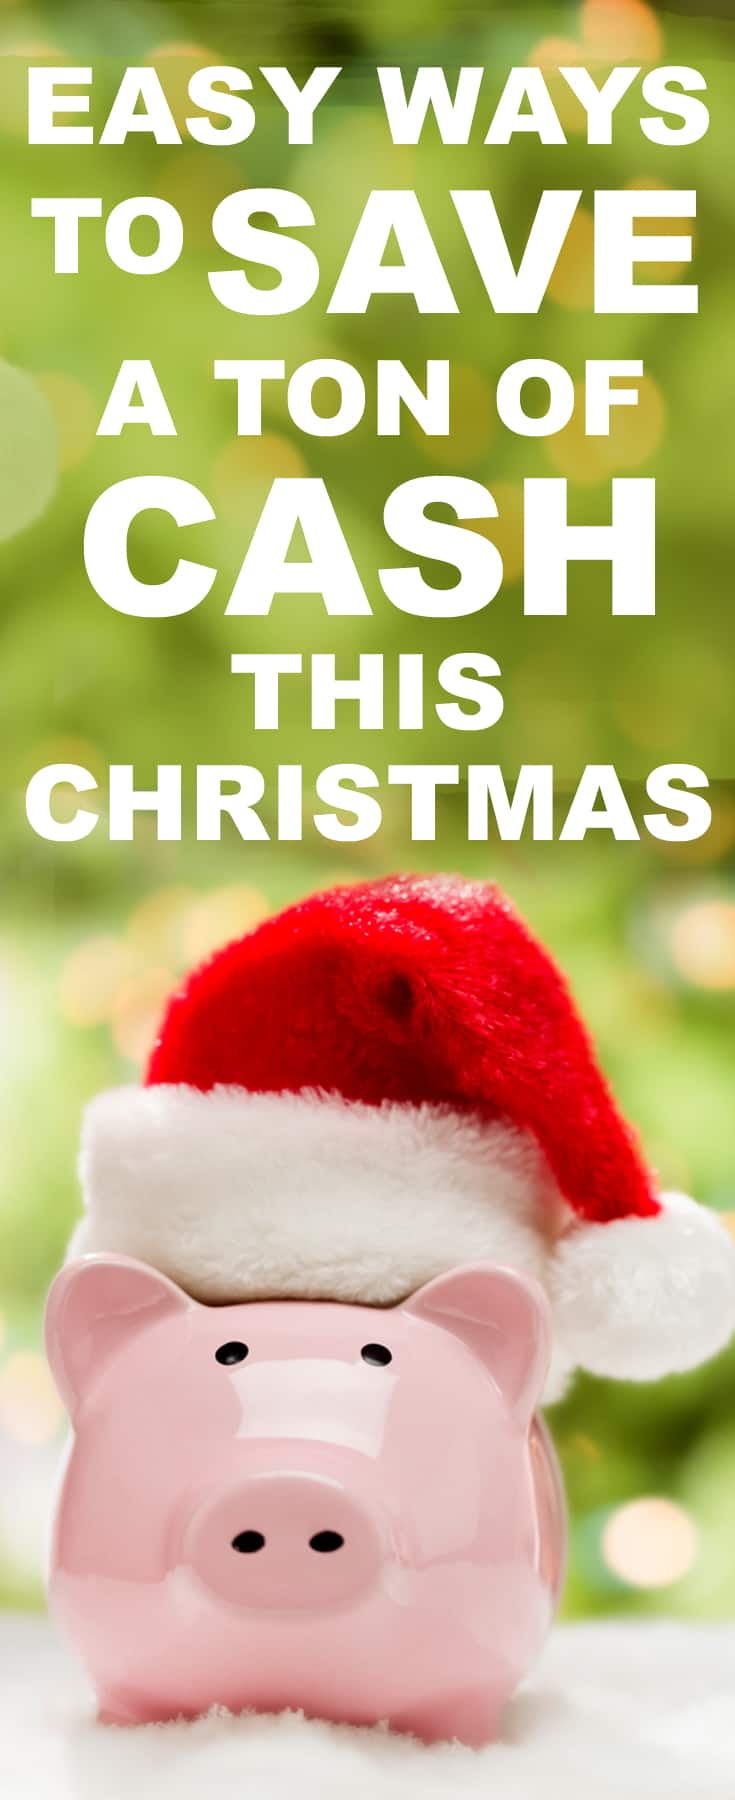 Save money on Christmas with these GREAT tips! Christmas can be SUPER expensive - but it doesn't have to be!